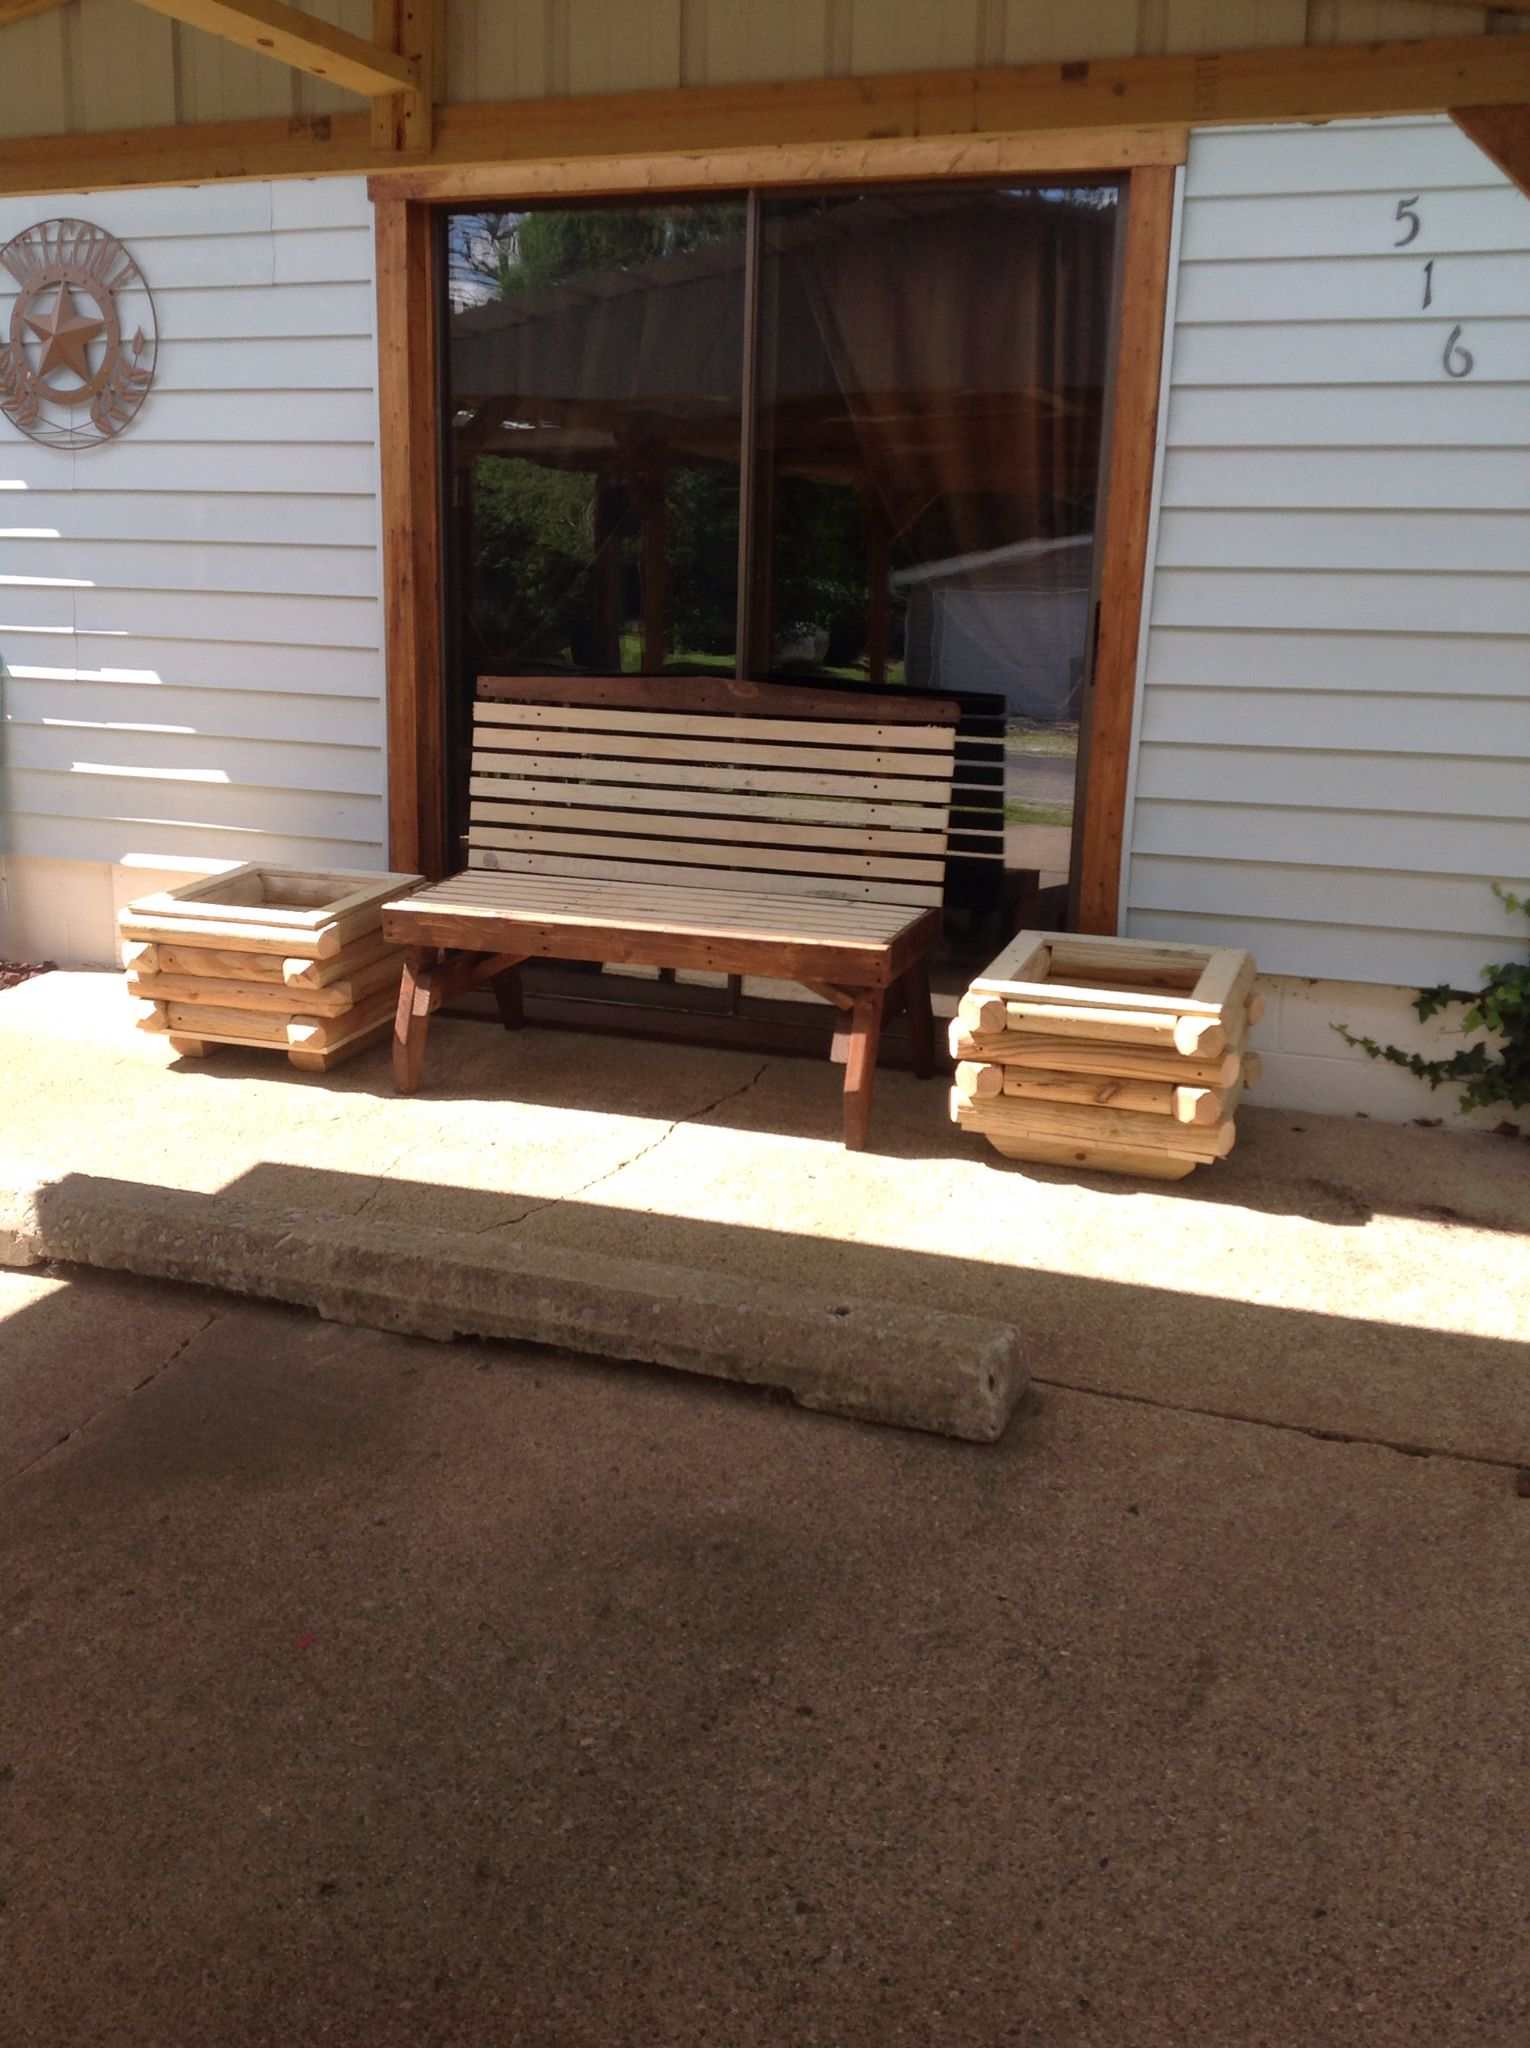 Bench U0026 Planters We Have Made For Our Town In Waveland, In. Made By